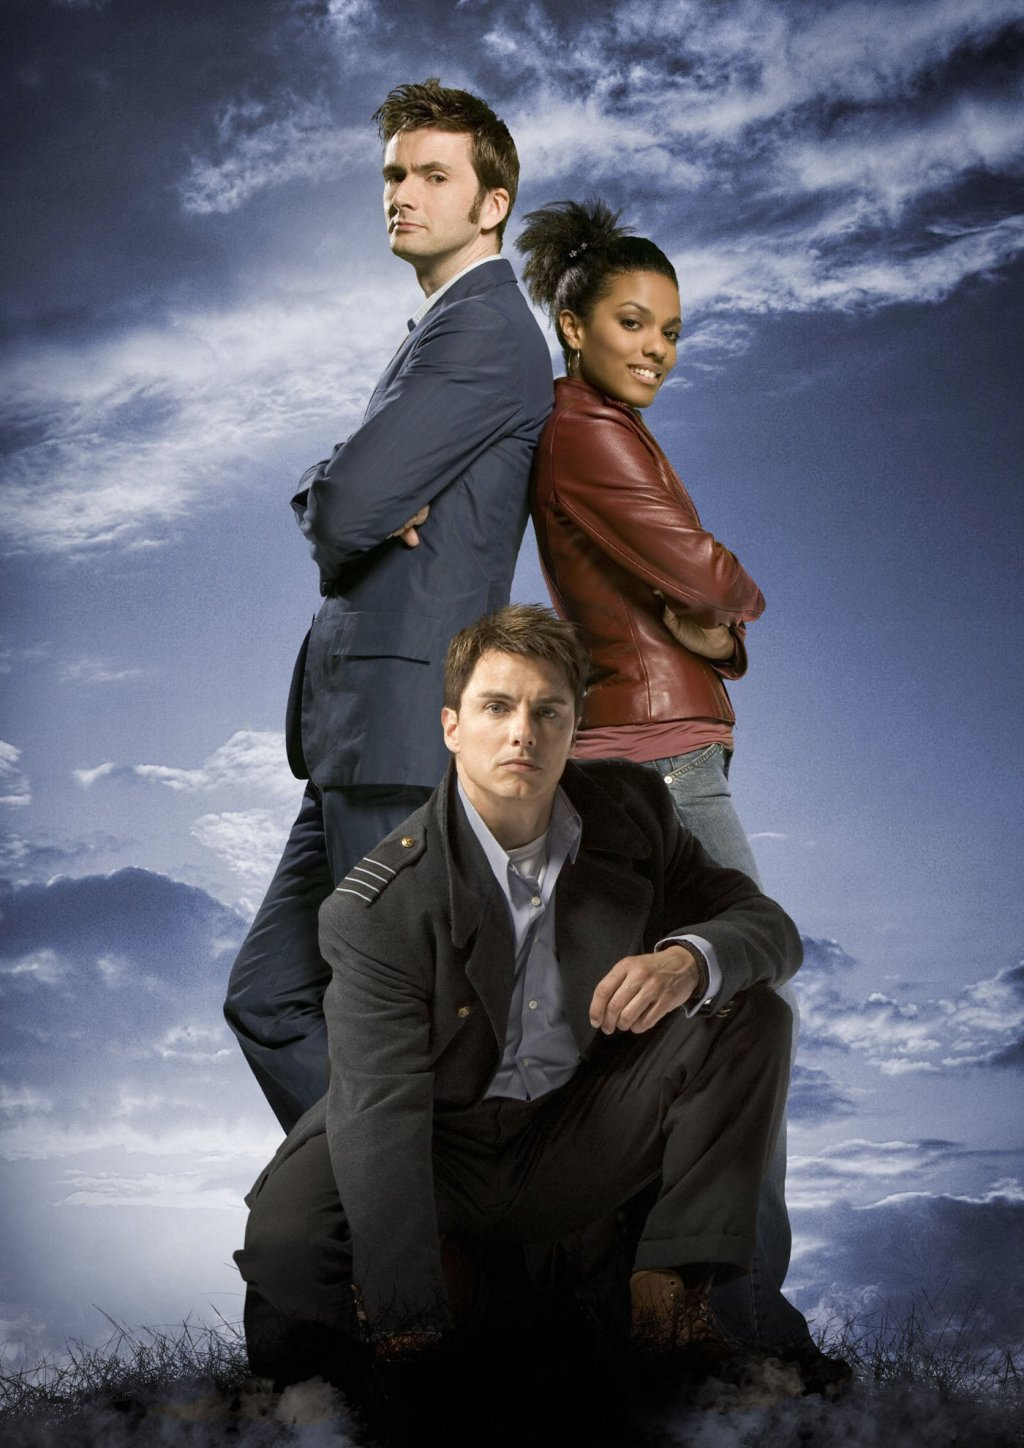 dvdbash — As Captain Jack Harkness comes storming into the...